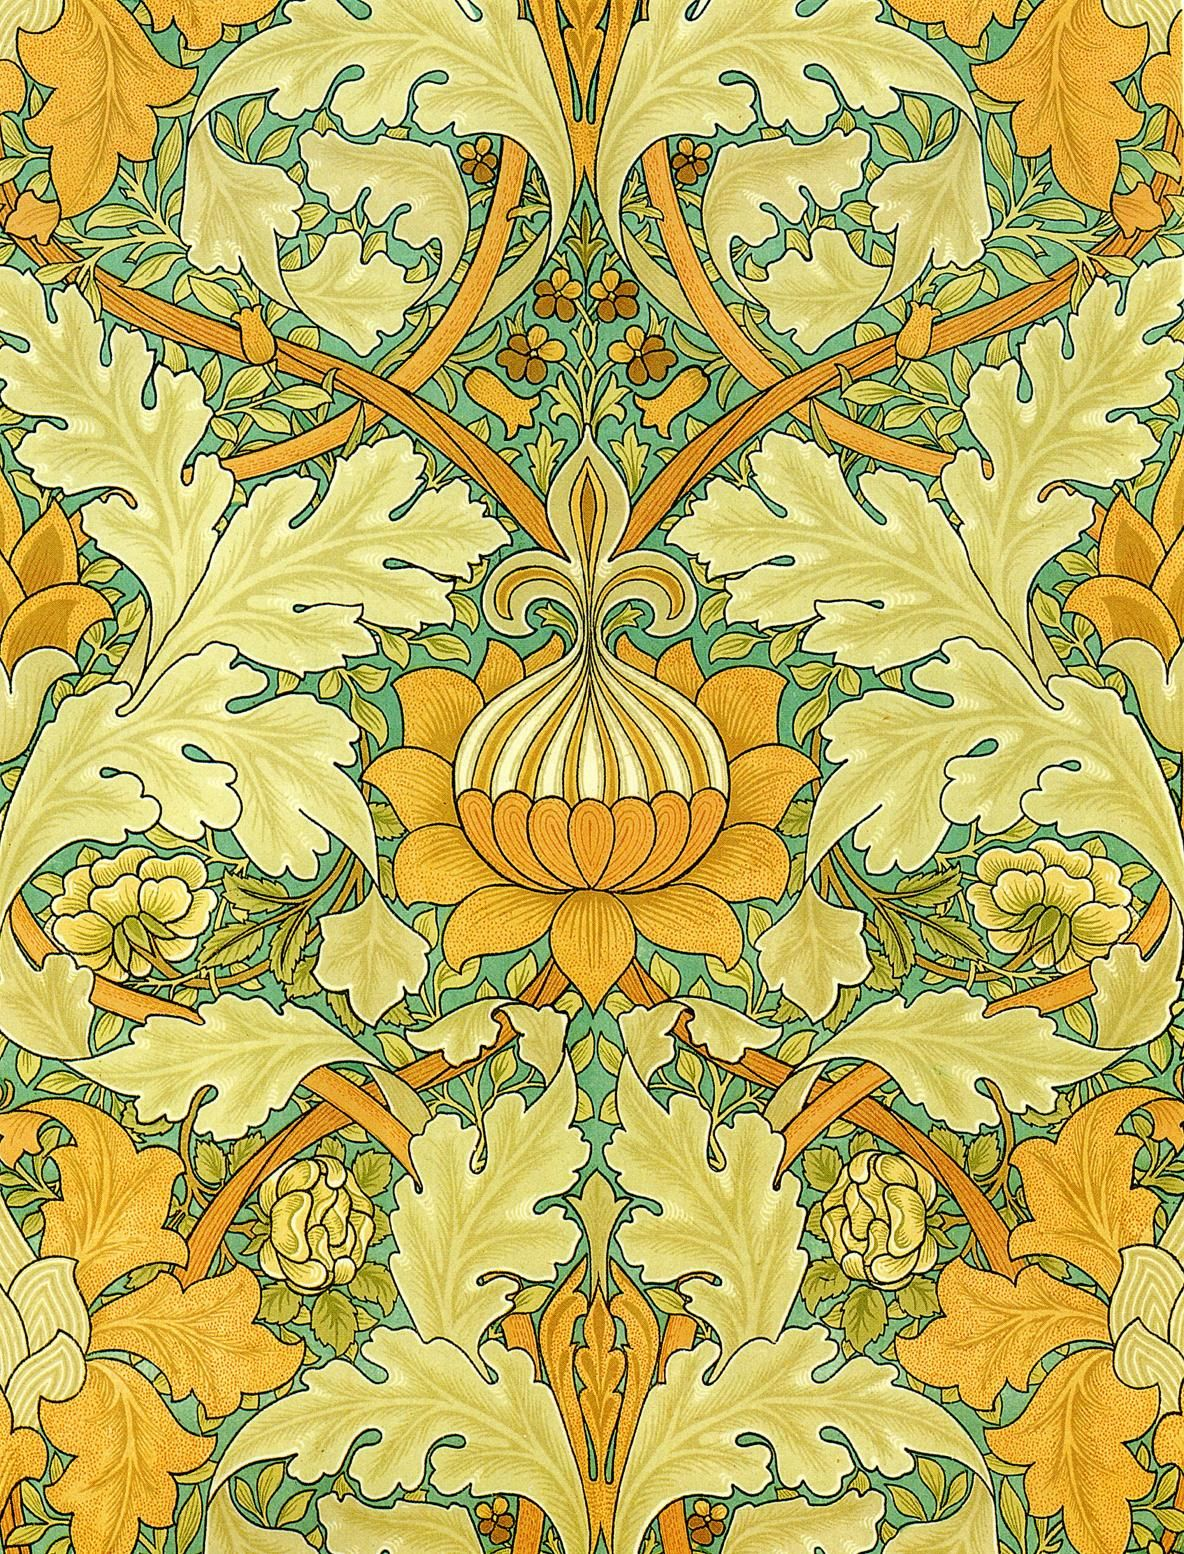 Wallpaper design for St. James' Palace by William Morris